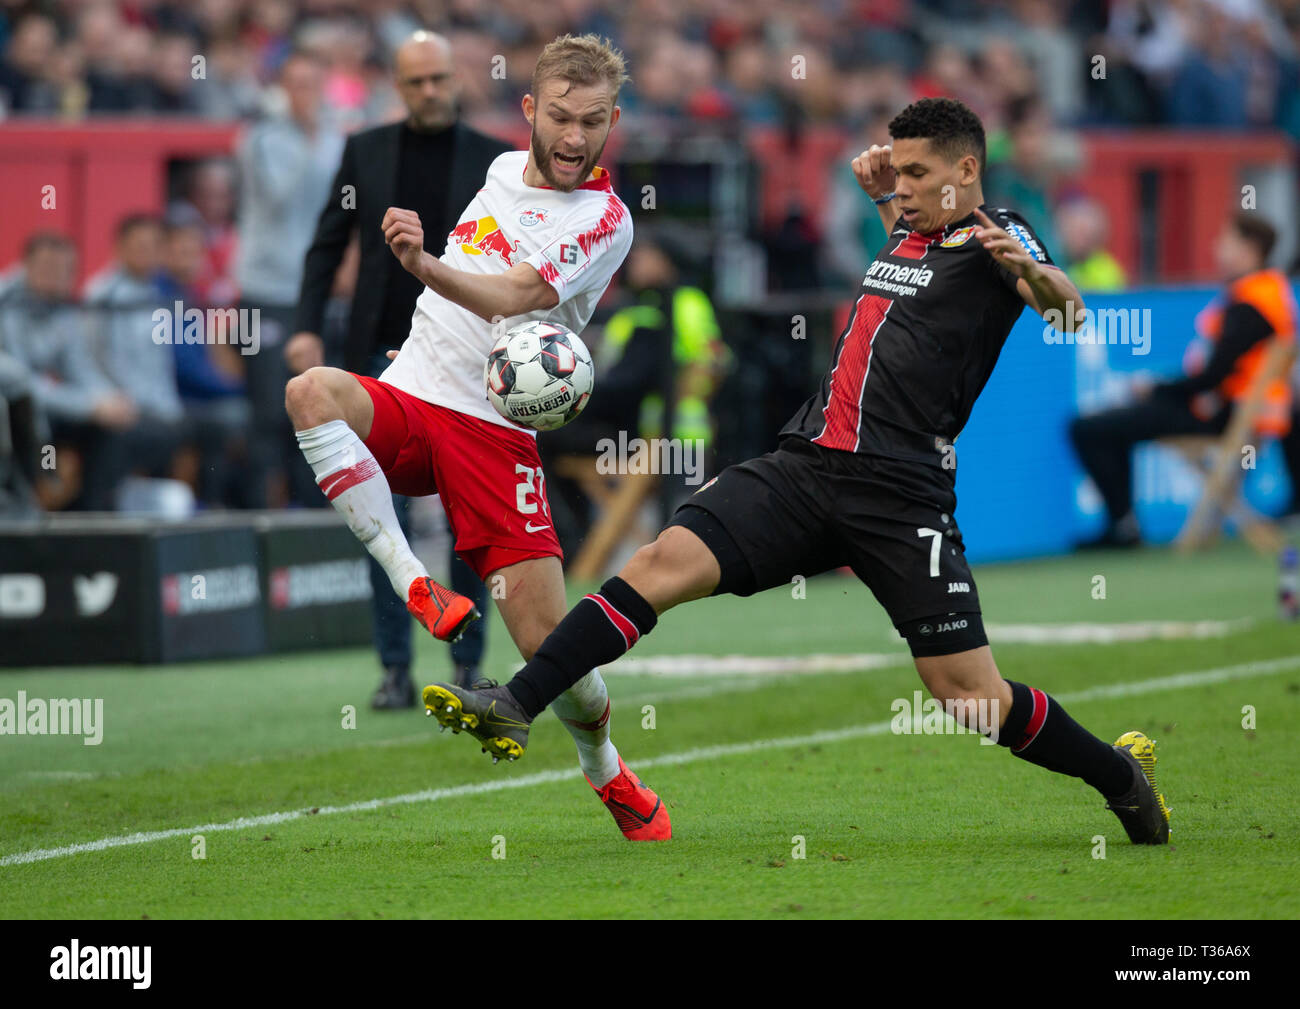 Leverkusen, Germany, April 6 2019, Bundesliga, Bayer 04 Leverkusen vs RB Leipzig: Konrad Laimer (Leipzig), Paulinho (B04) in competition.              - Stock Image